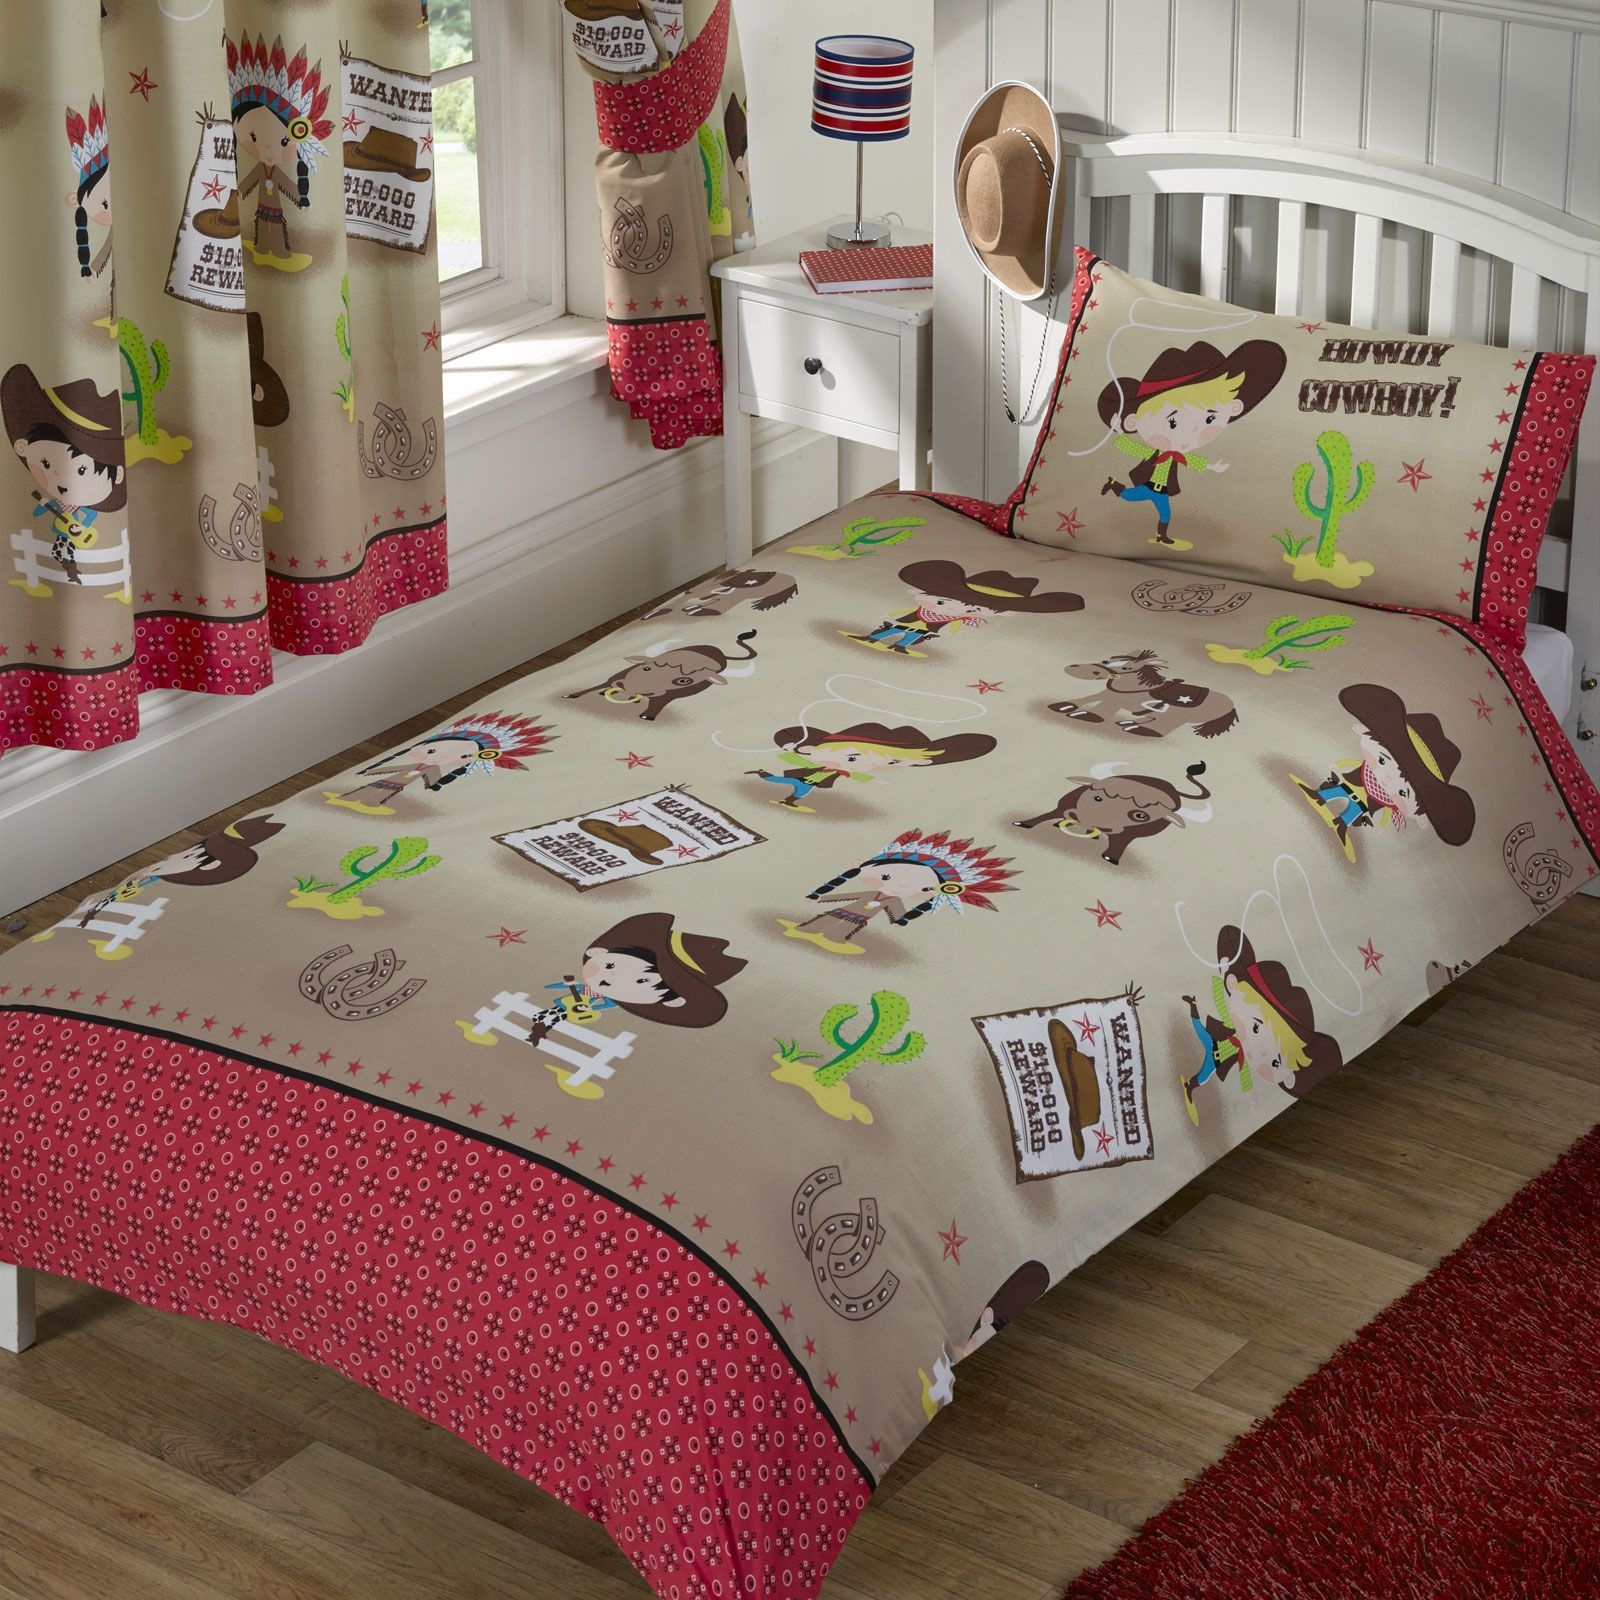 howdy cowboy chambre gamme simple double junior rideaux disponible enfants. Black Bedroom Furniture Sets. Home Design Ideas